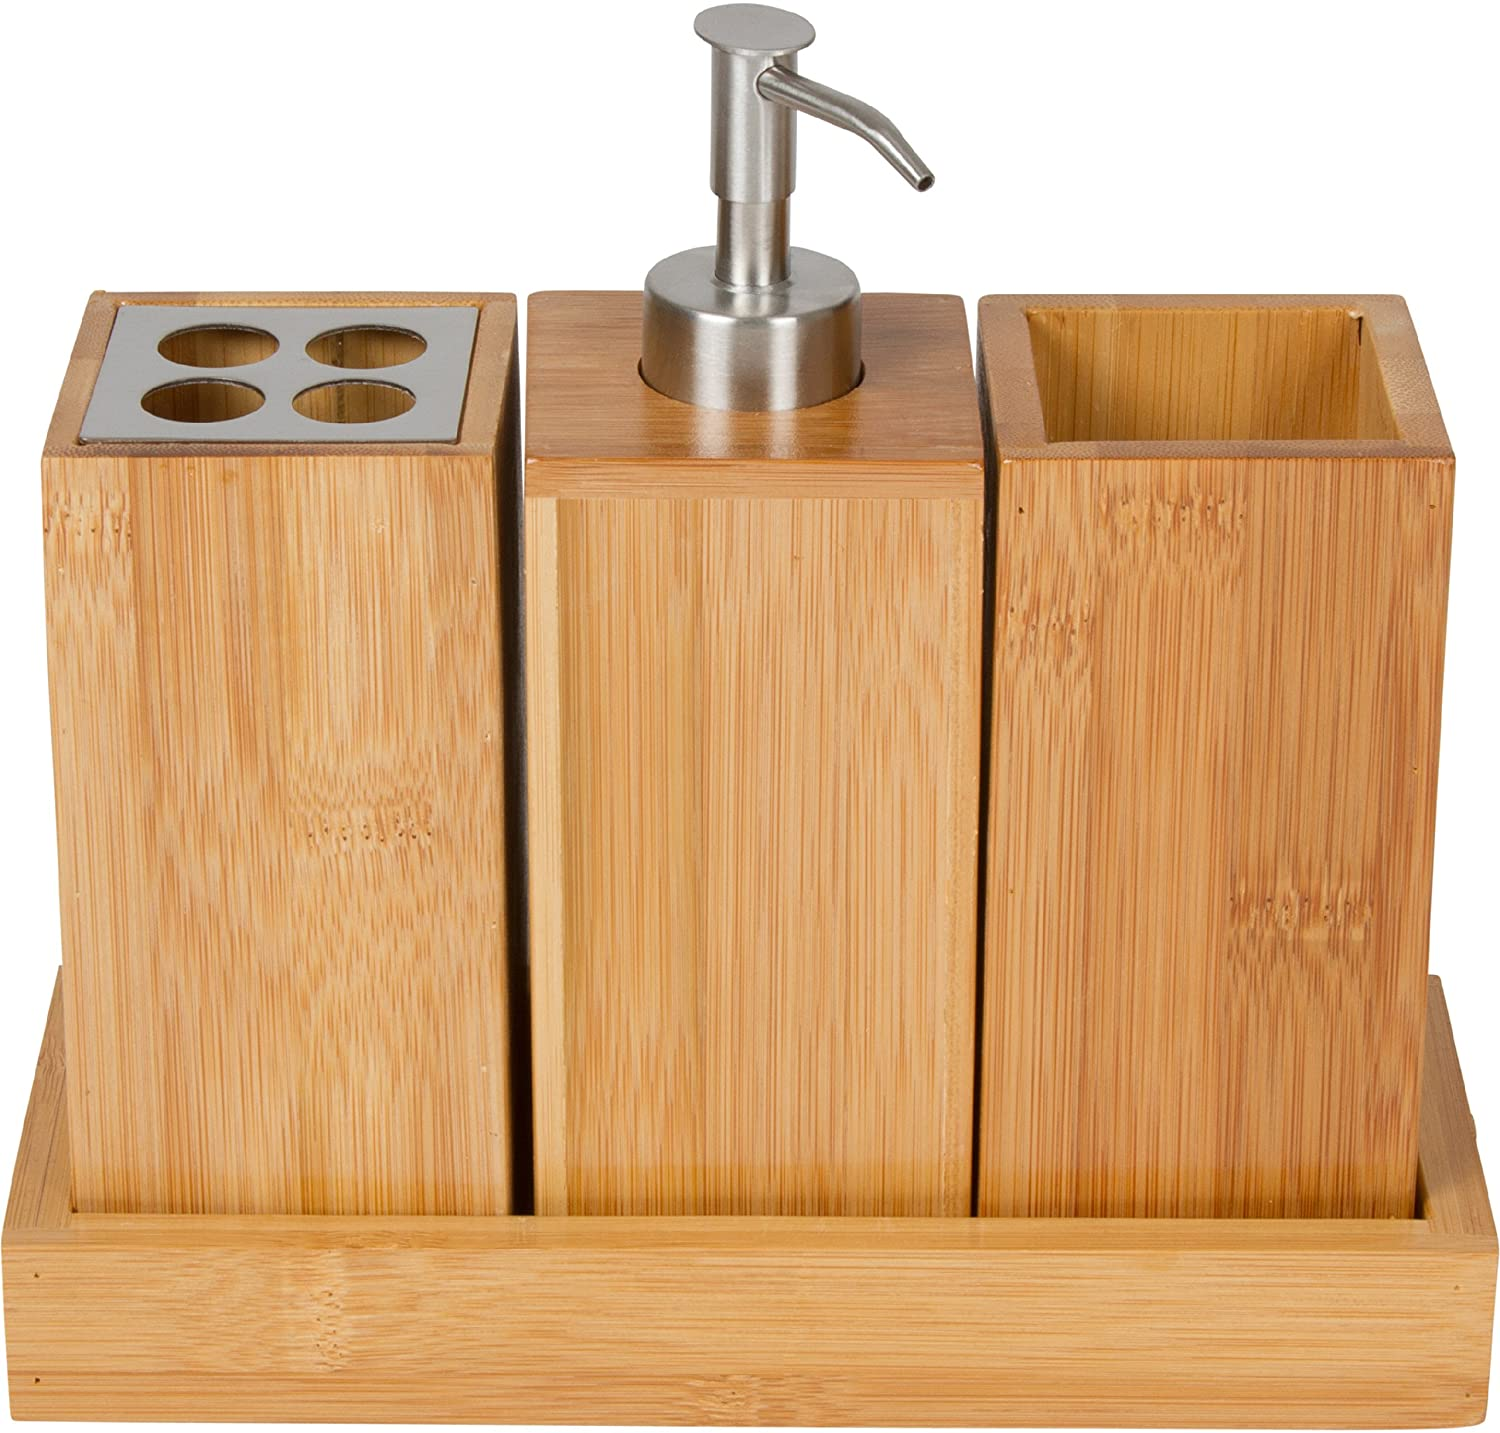 Toothbrush holder soap dispenser caddy bamboo trio set for Bathroom soap dispensers bath accessories